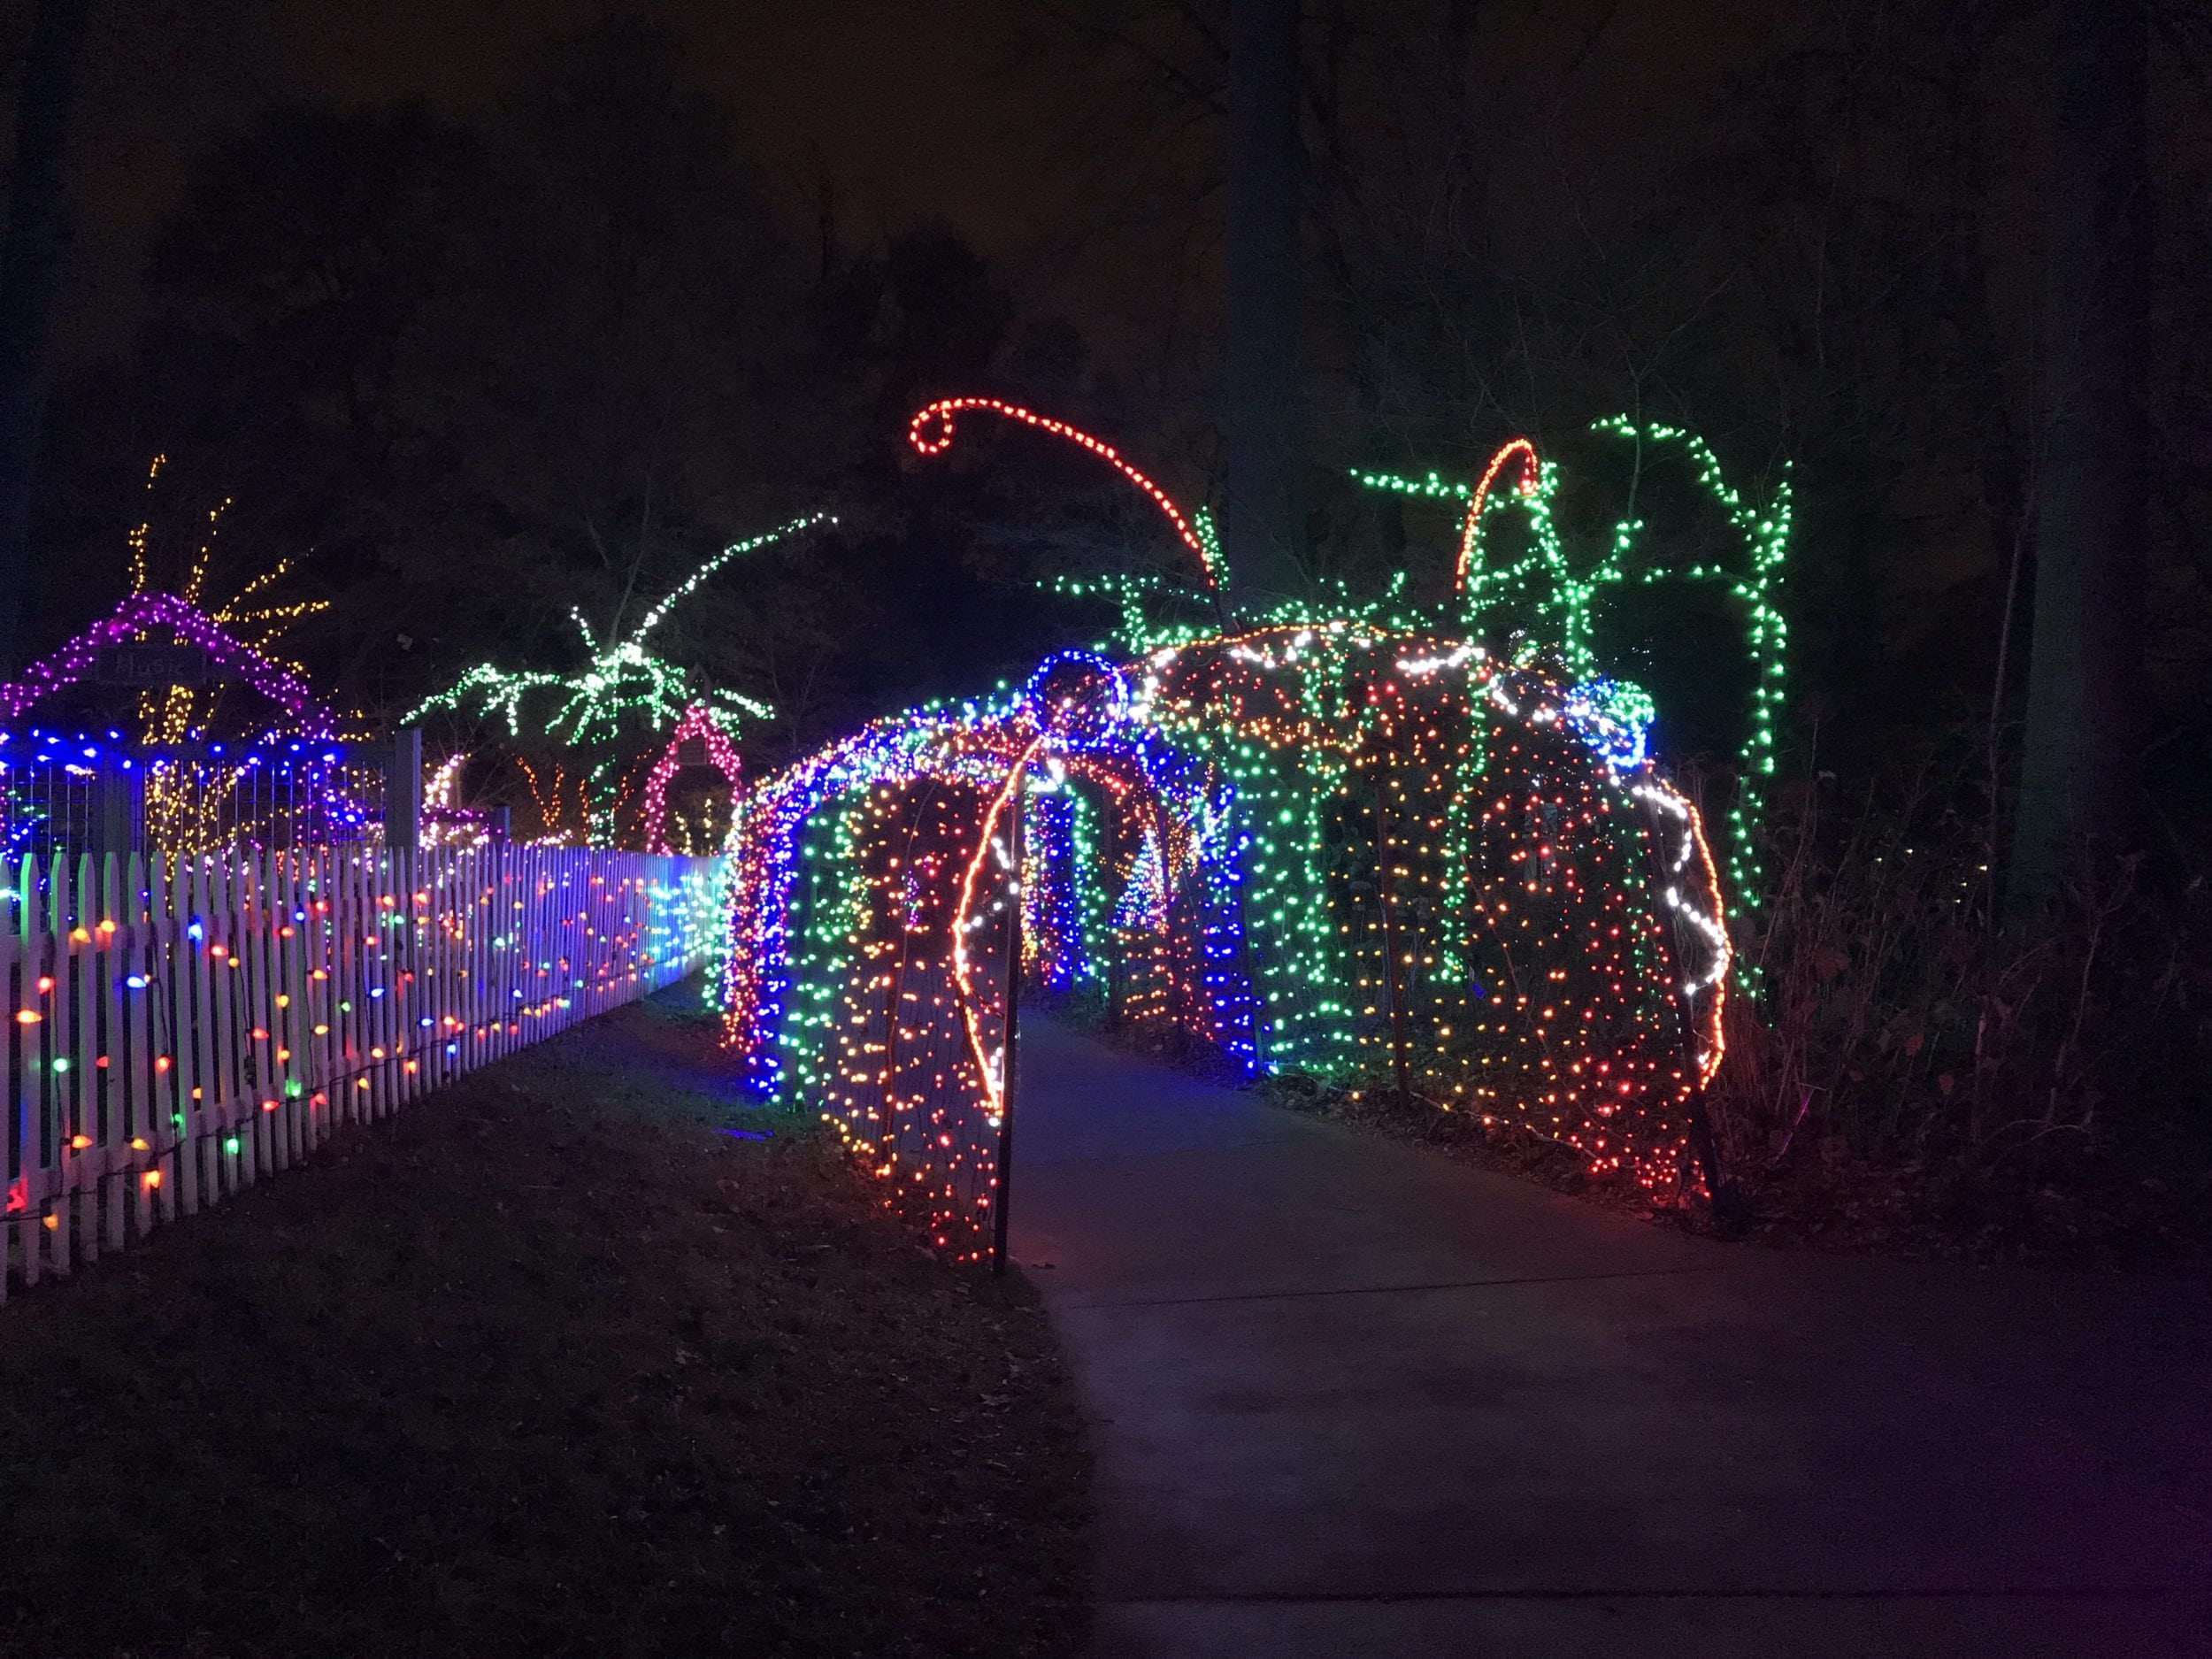 Brookside Gardens Christmas Lights 2020 First Timers' Guide to the Garden of Lights at Brookside Gardens